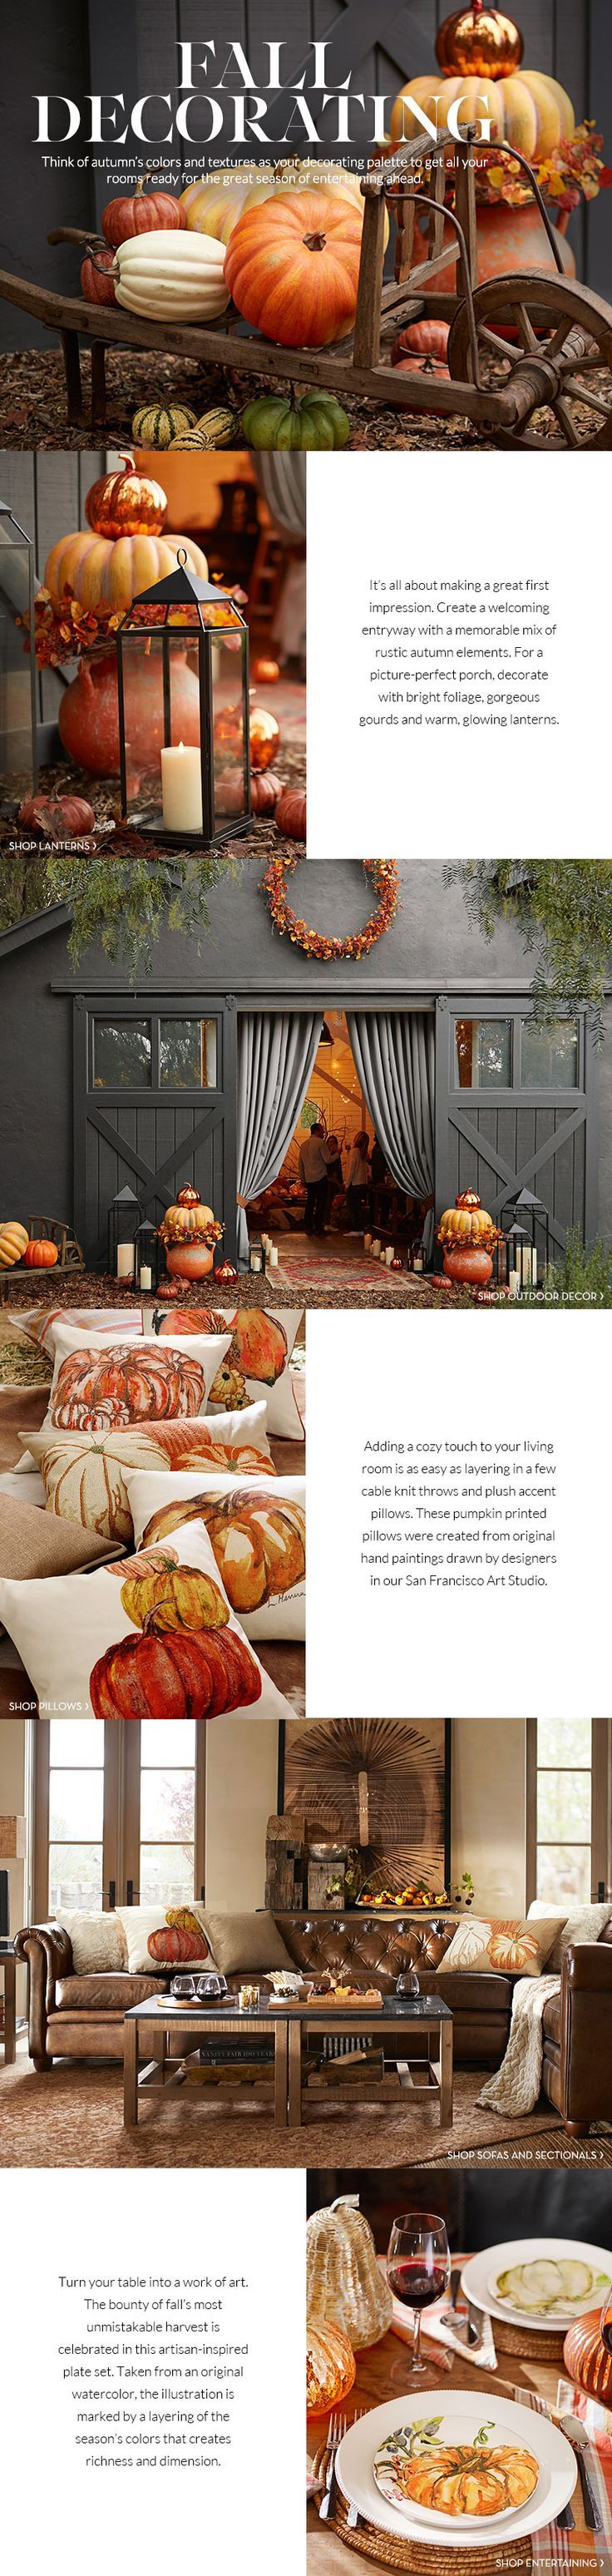 Fall Decorating | Pottery Barn                                                                                                                                                                                 More